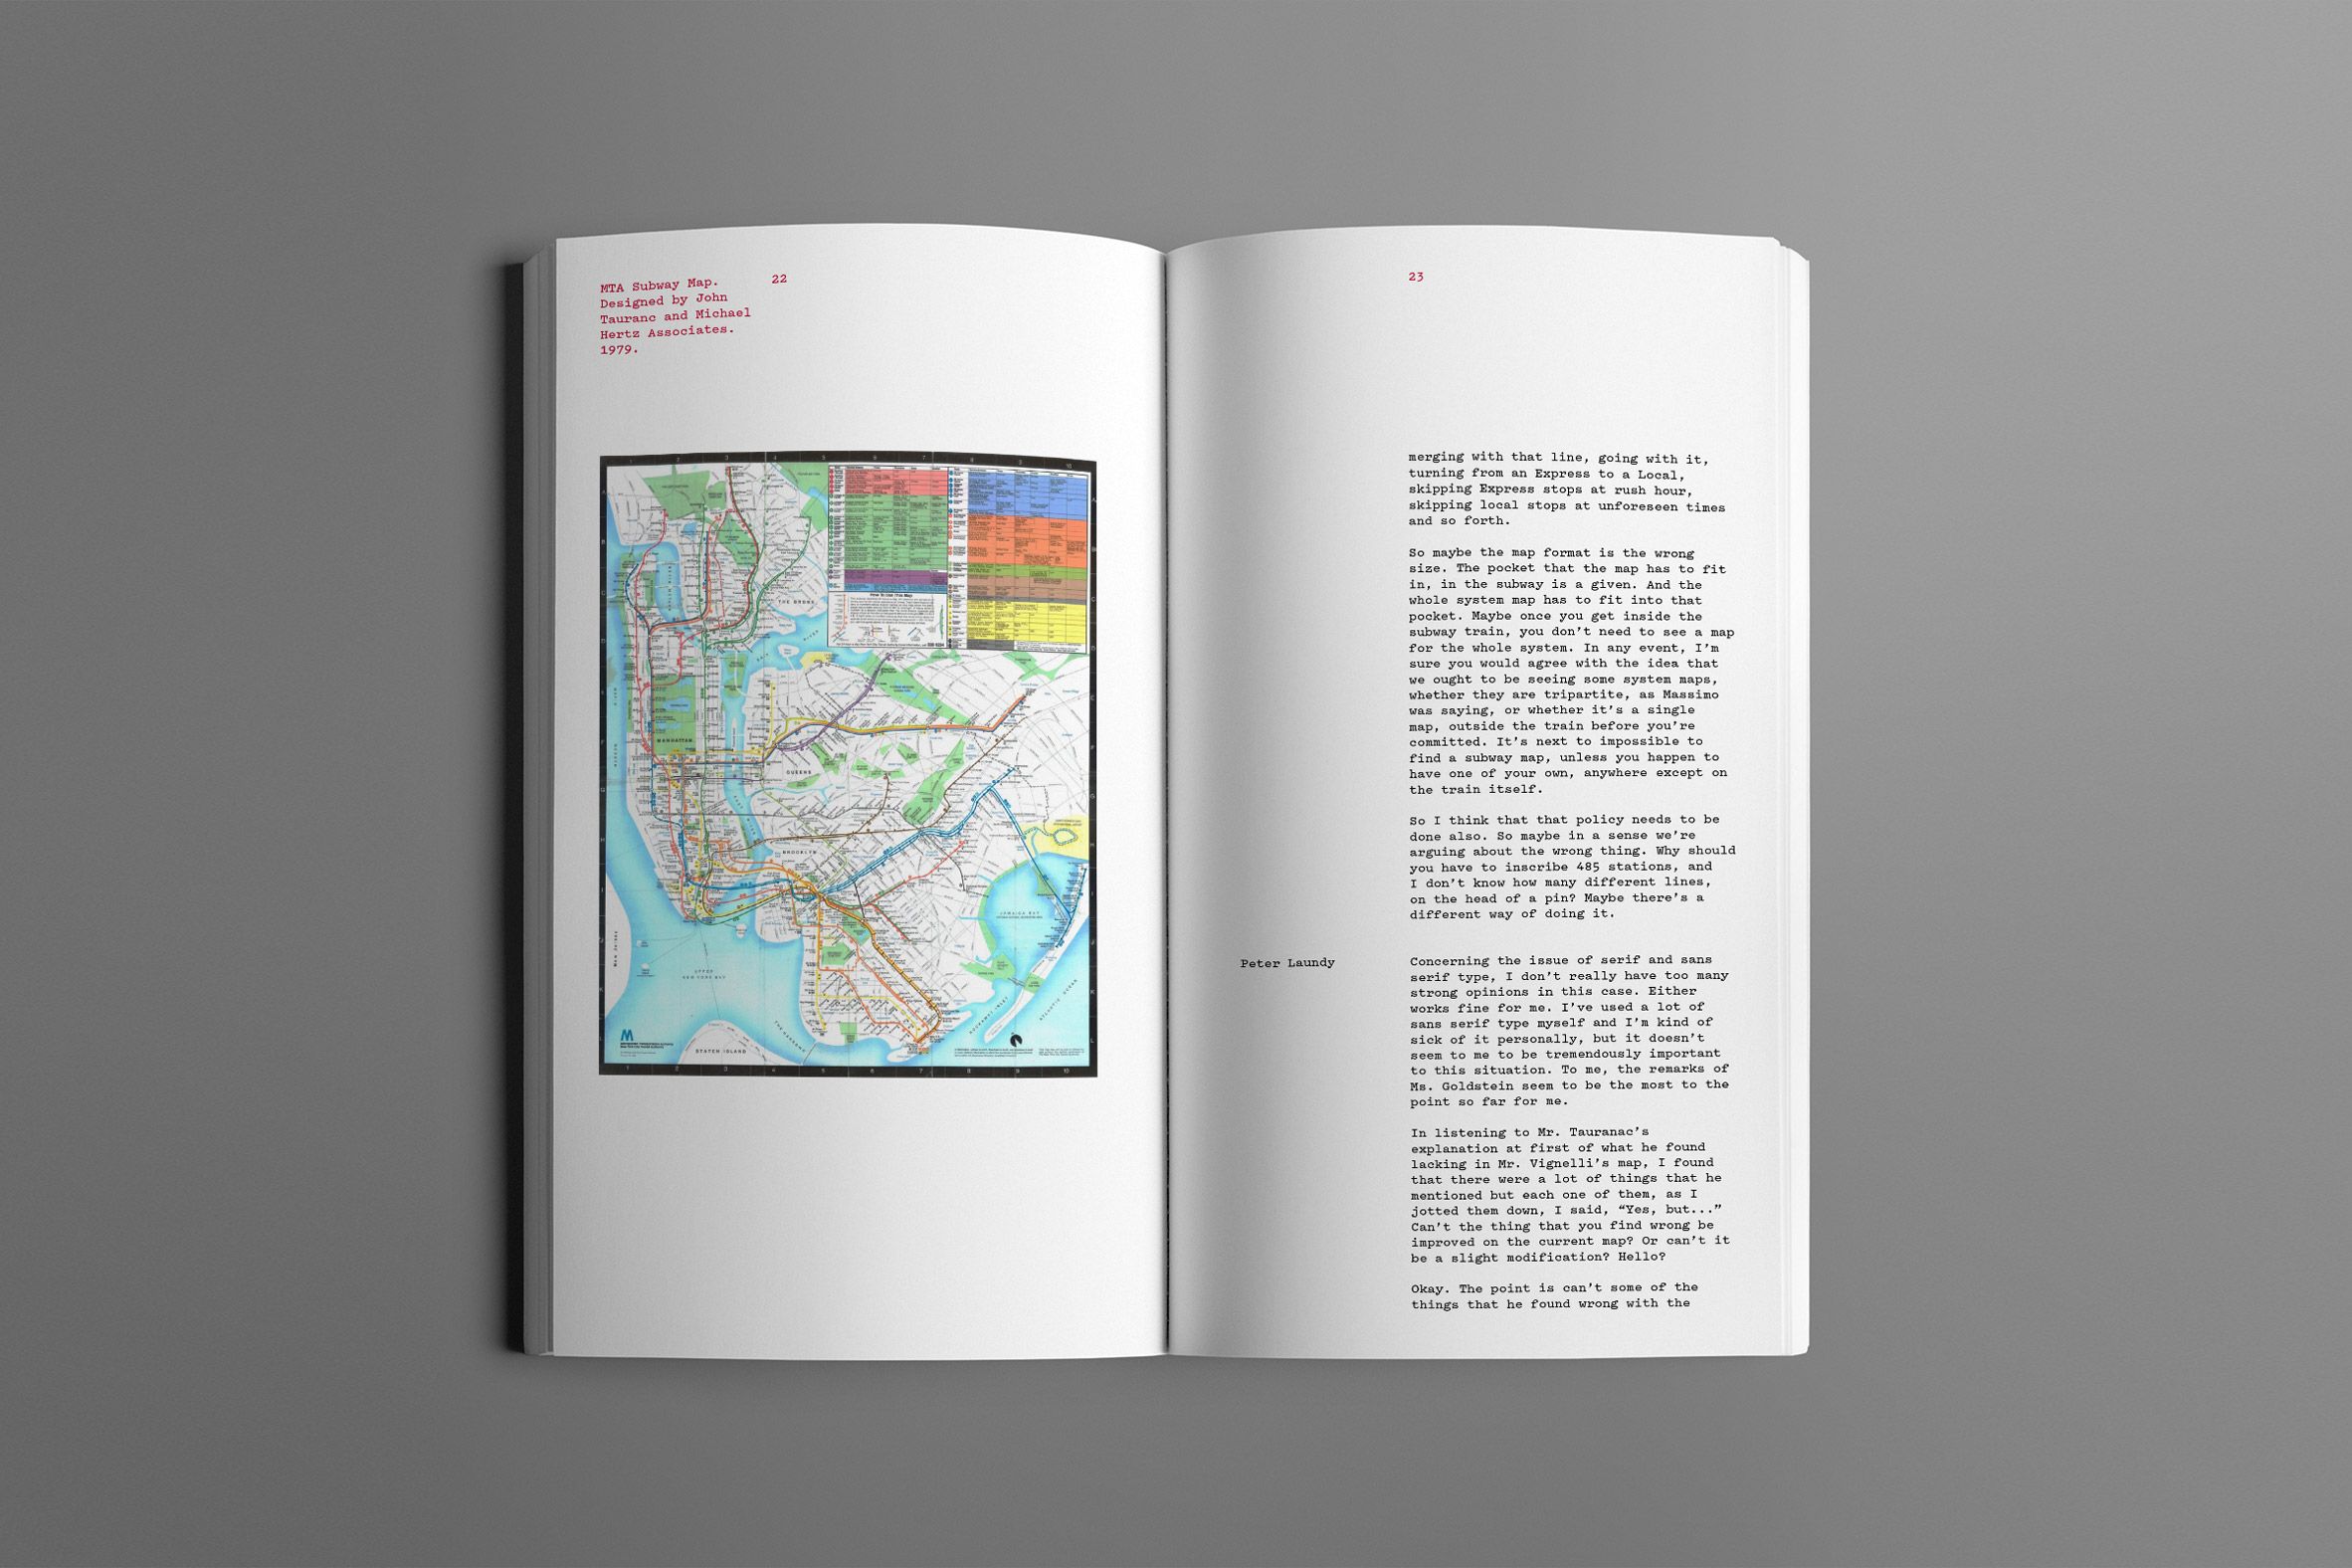 Pages of Gary Hustwit's new book on graphic design